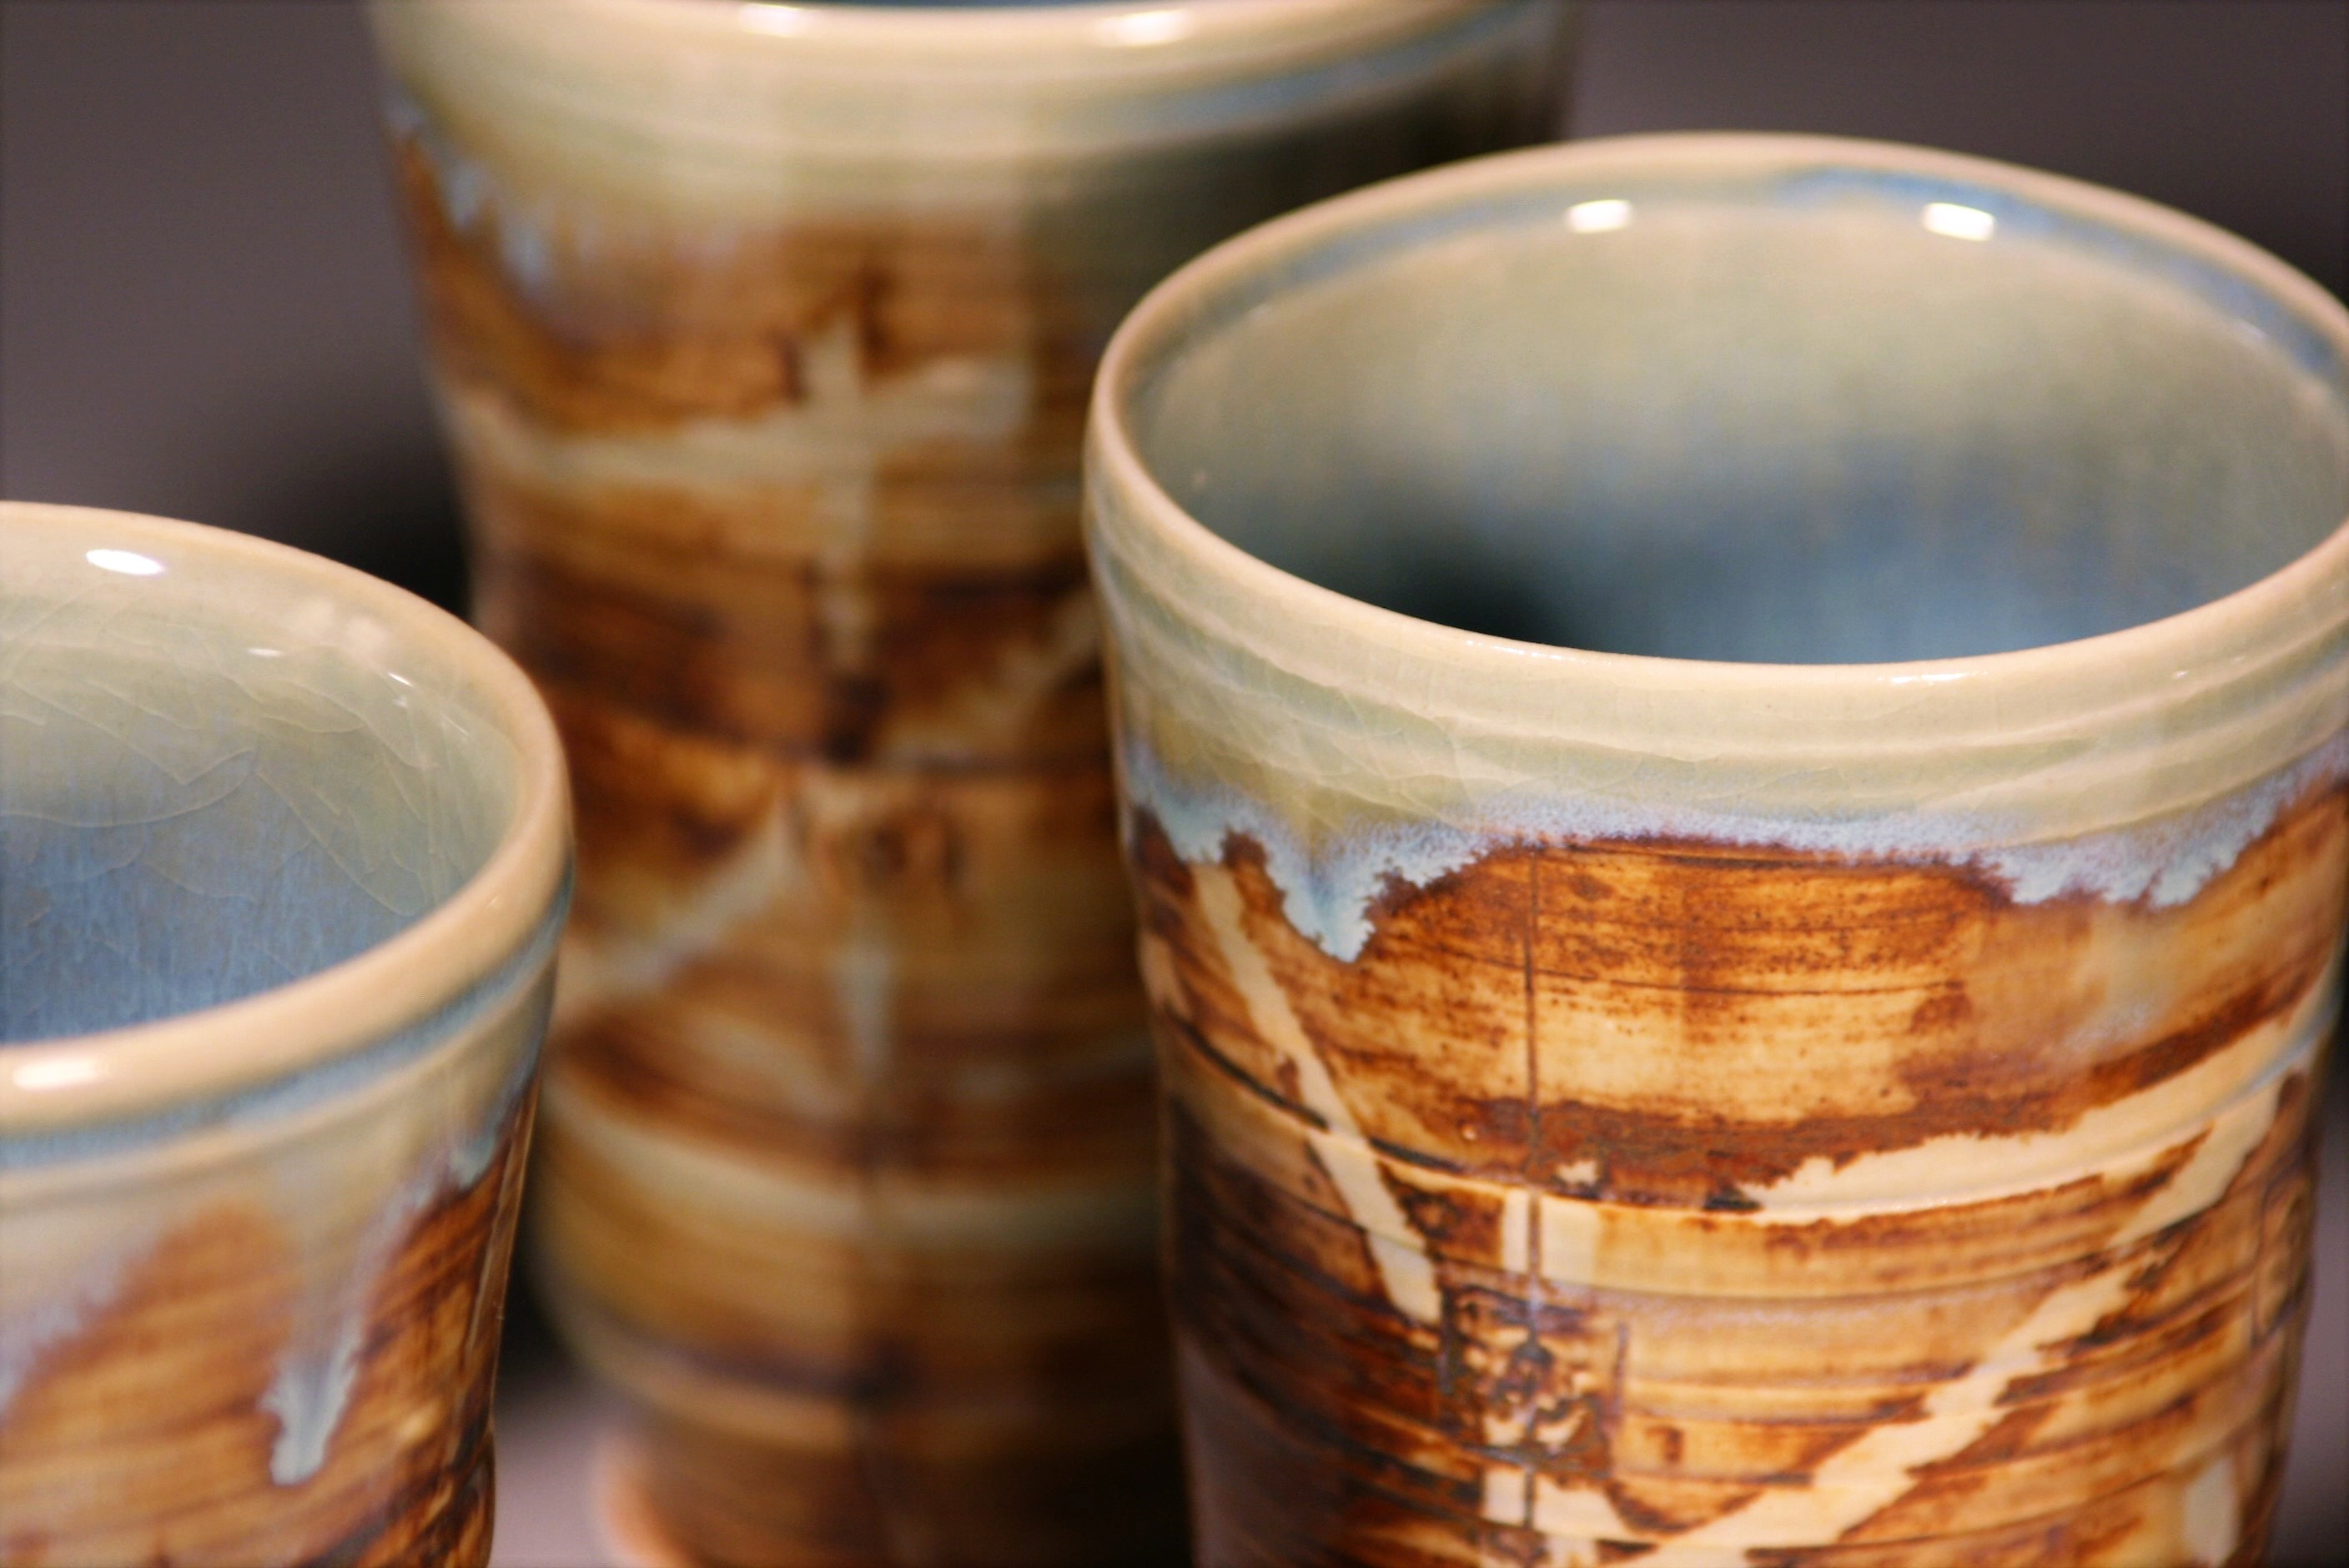 Baked Clay Studio_Cameron Petke _Porcelain tumblers_detail